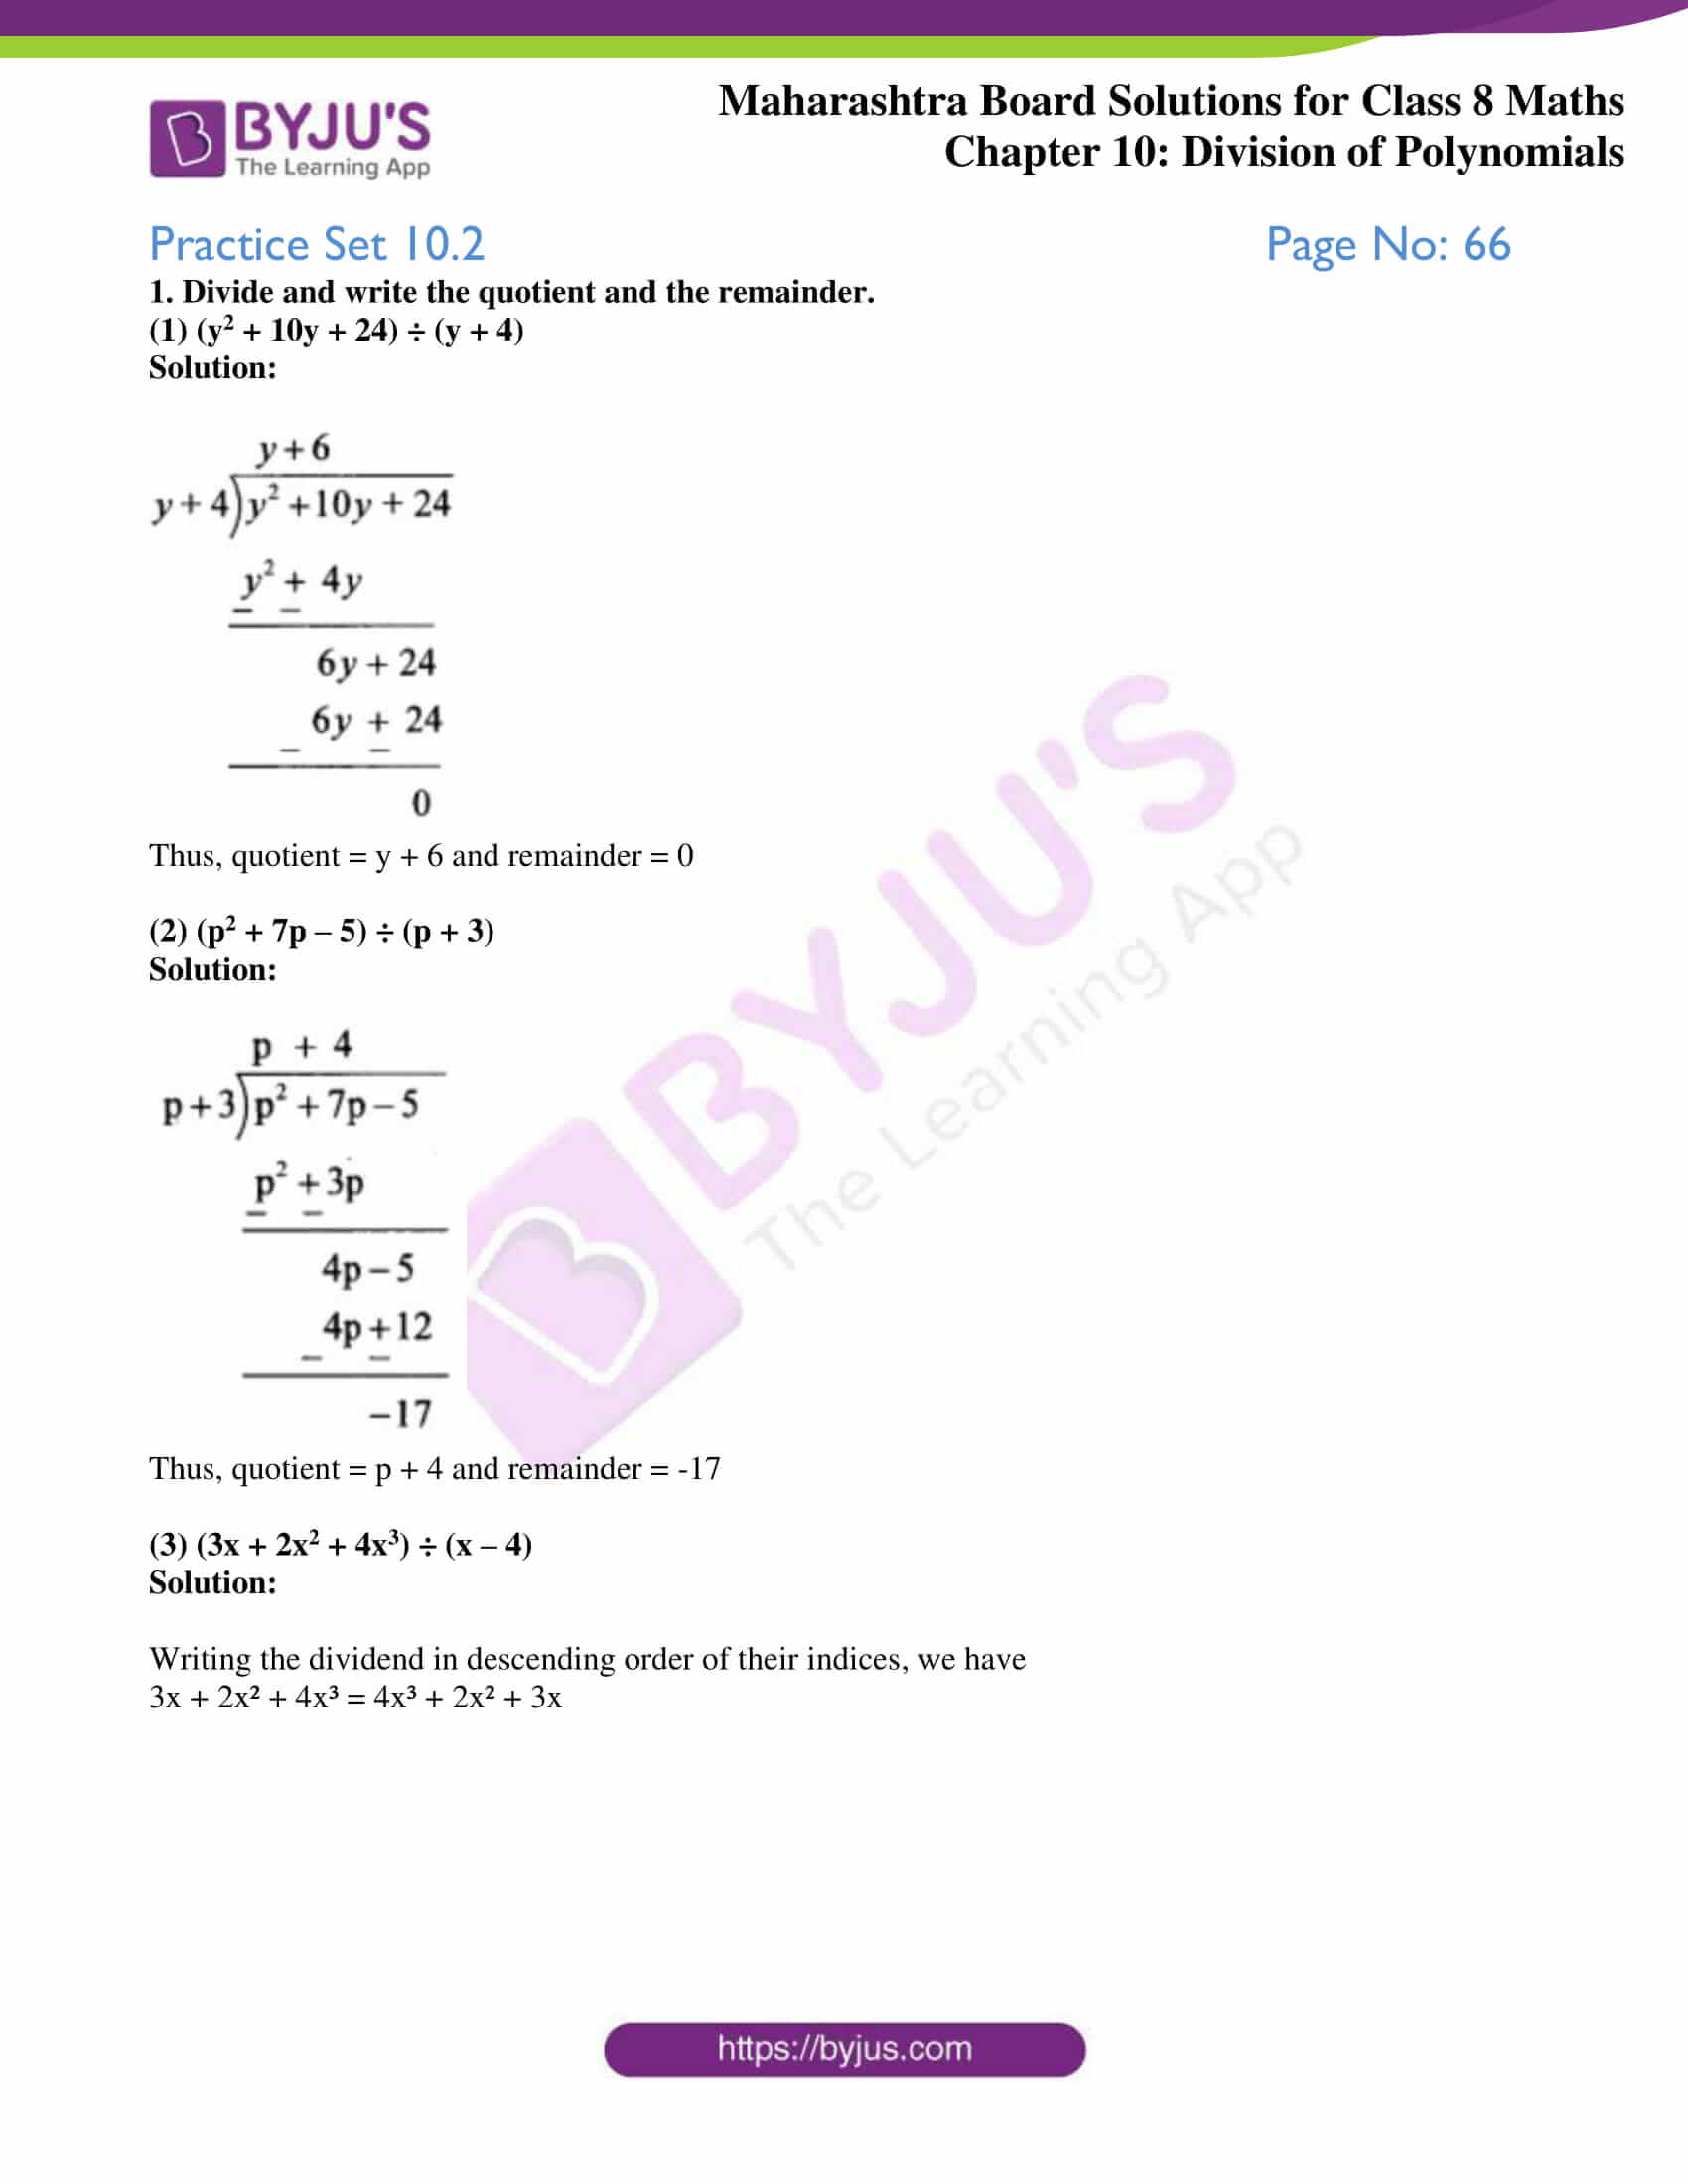 msbshse sol for class 8 maths chapter 10 4